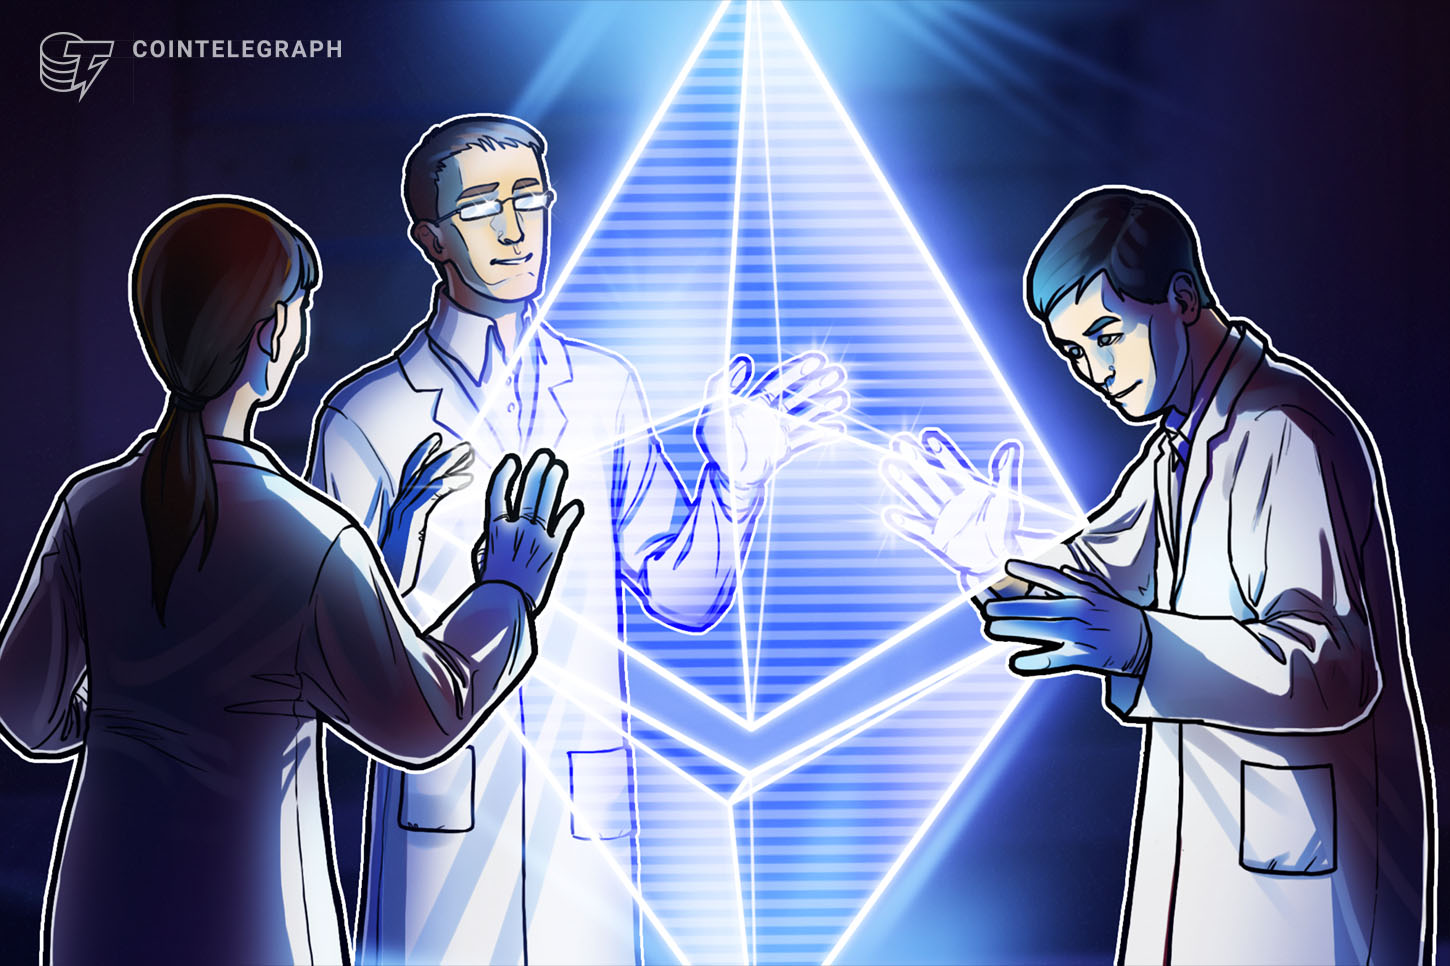 Ahead of Ethereum 2.0 Launch, 3 Key Metrics Point to ETH Price Surge